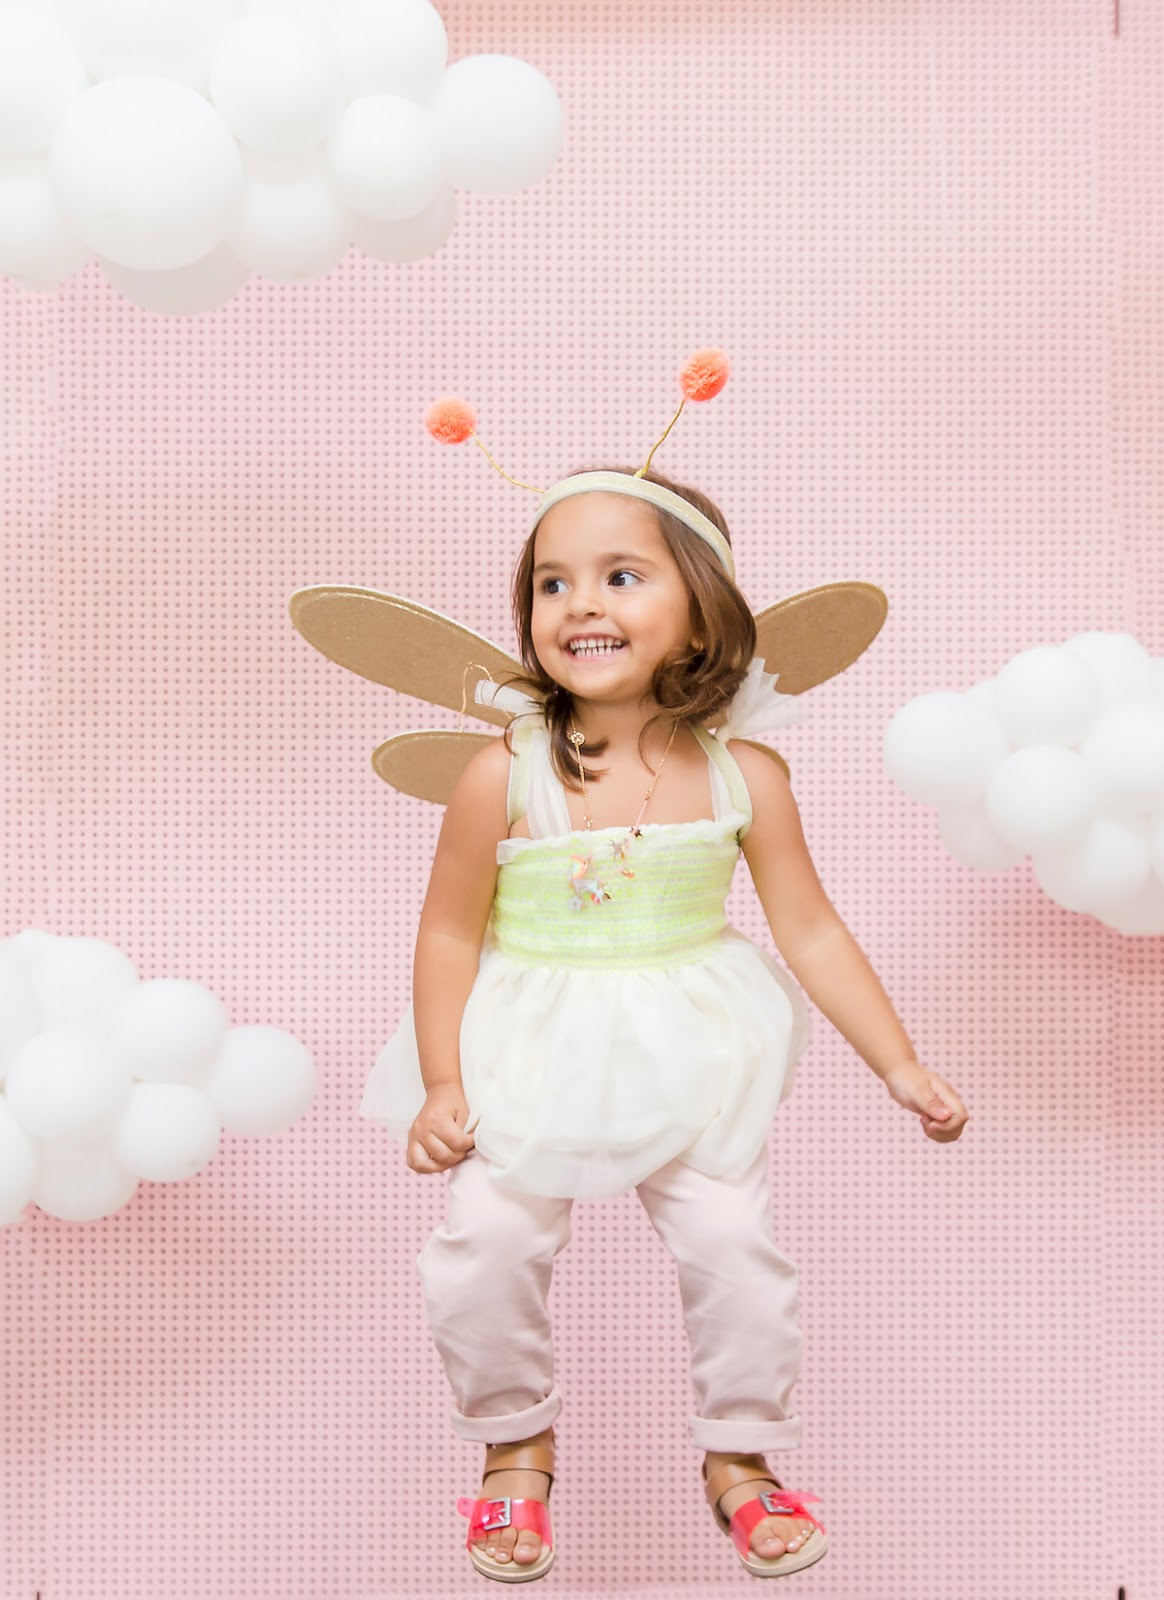 pink sky balloon clouds photo booth